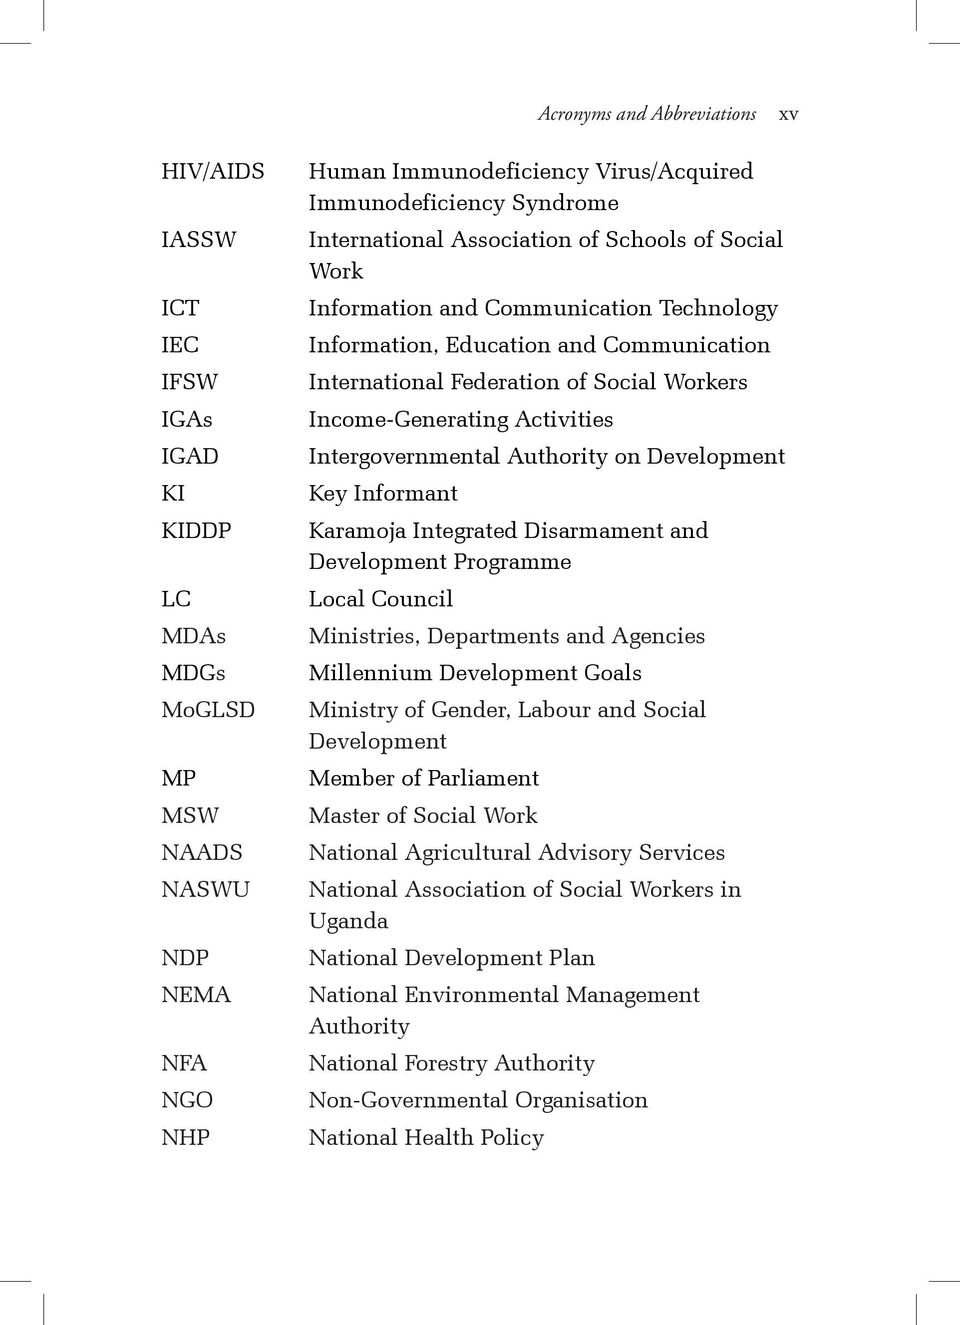 Informant KIDDP Karamoja Integrated Disarmament and Development Programme LC Local Council MDAs Ministries, Departments and Agencies MDGs Millennium Development Goals MoGLSD Ministry of Gender,